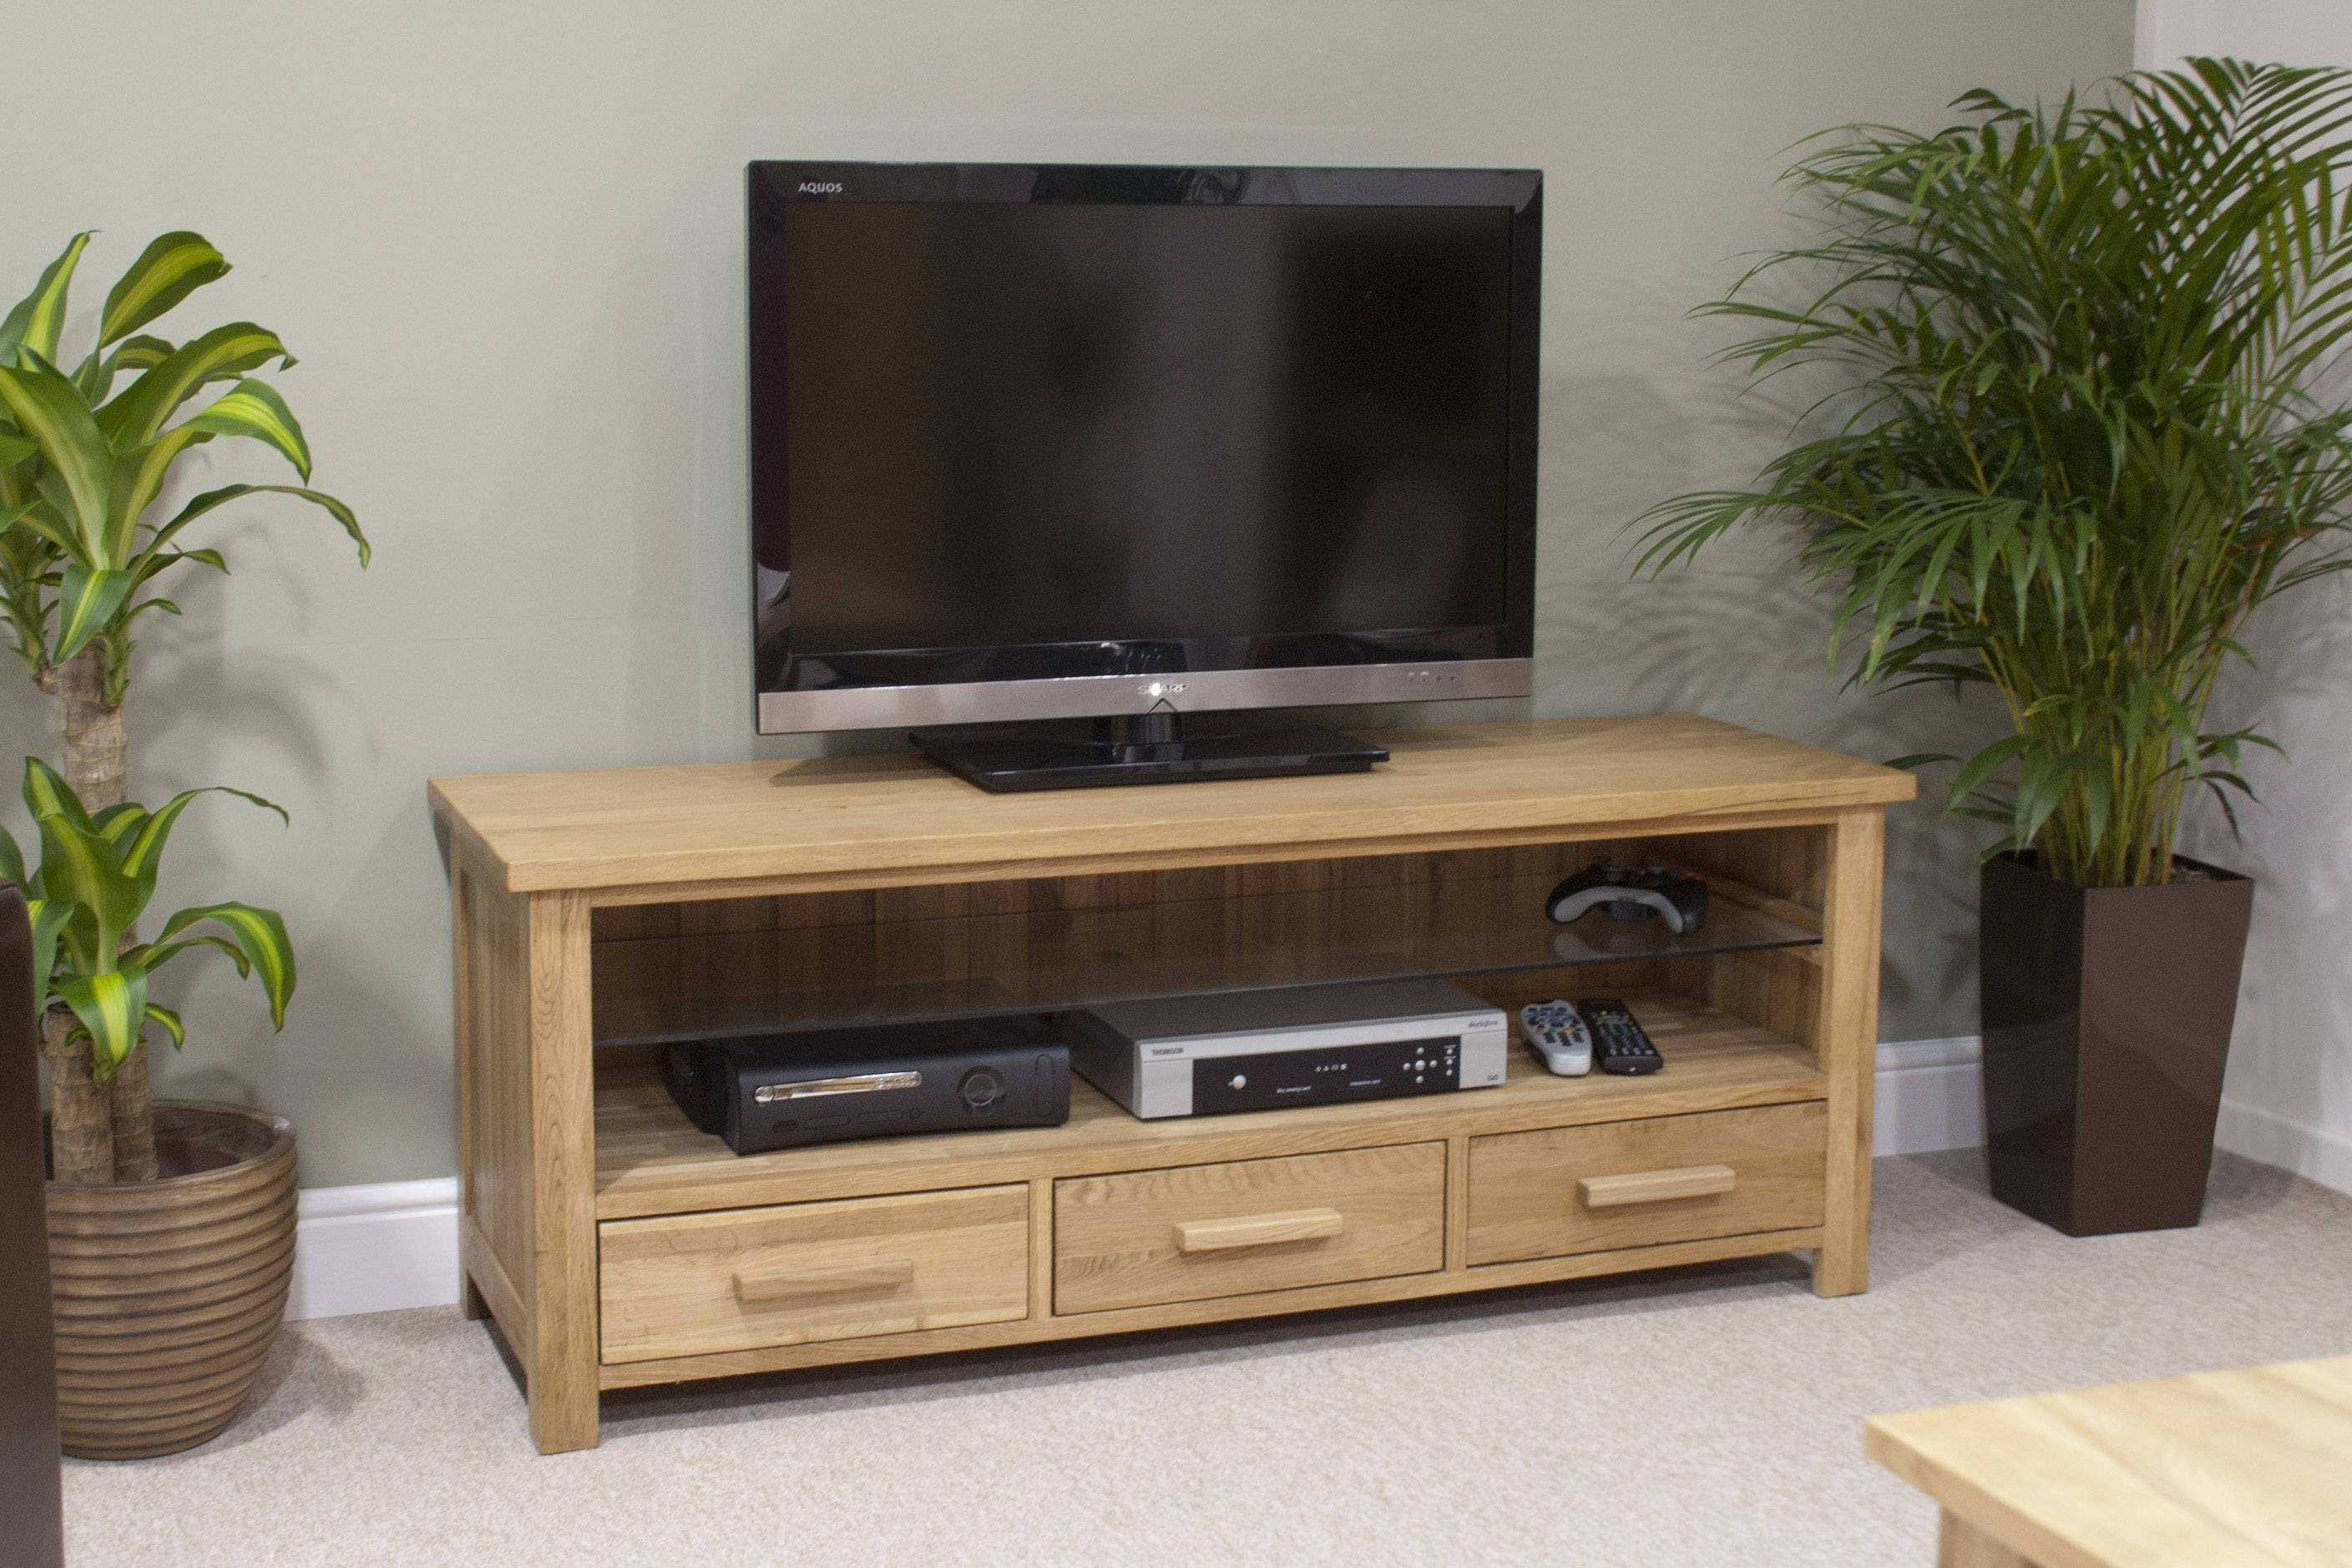 Bench. Pine Tv Bench: Rustic Tv Stand Wood Pine Tables Bench regarding Pine Wood Tv Stands (Image 2 of 15)